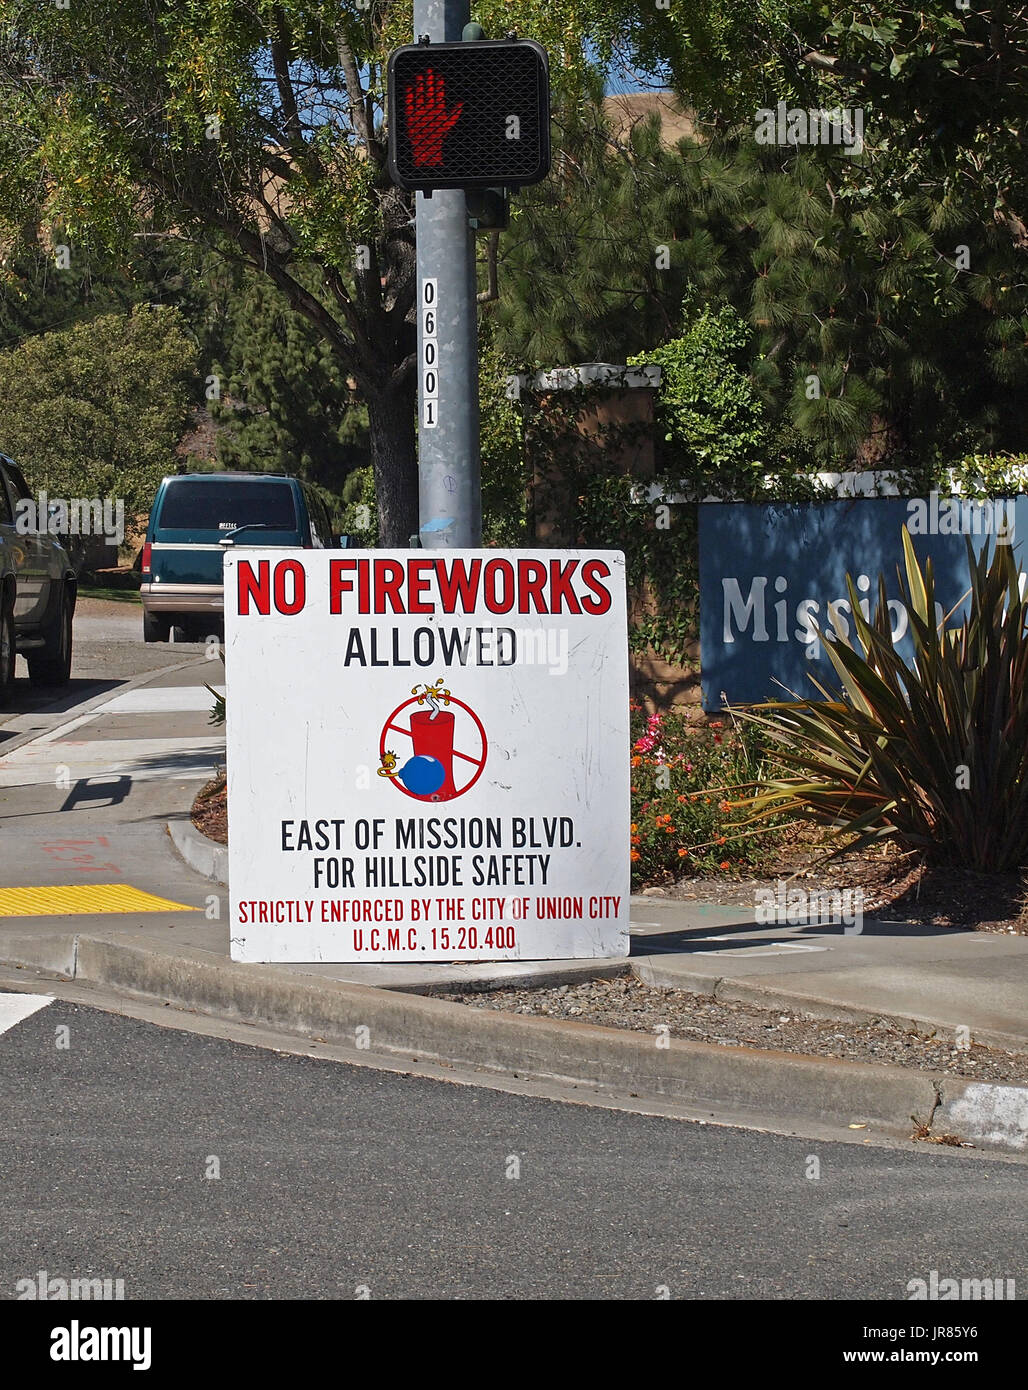 No Fireworks allowed east of Mission Blvd sign, Union City